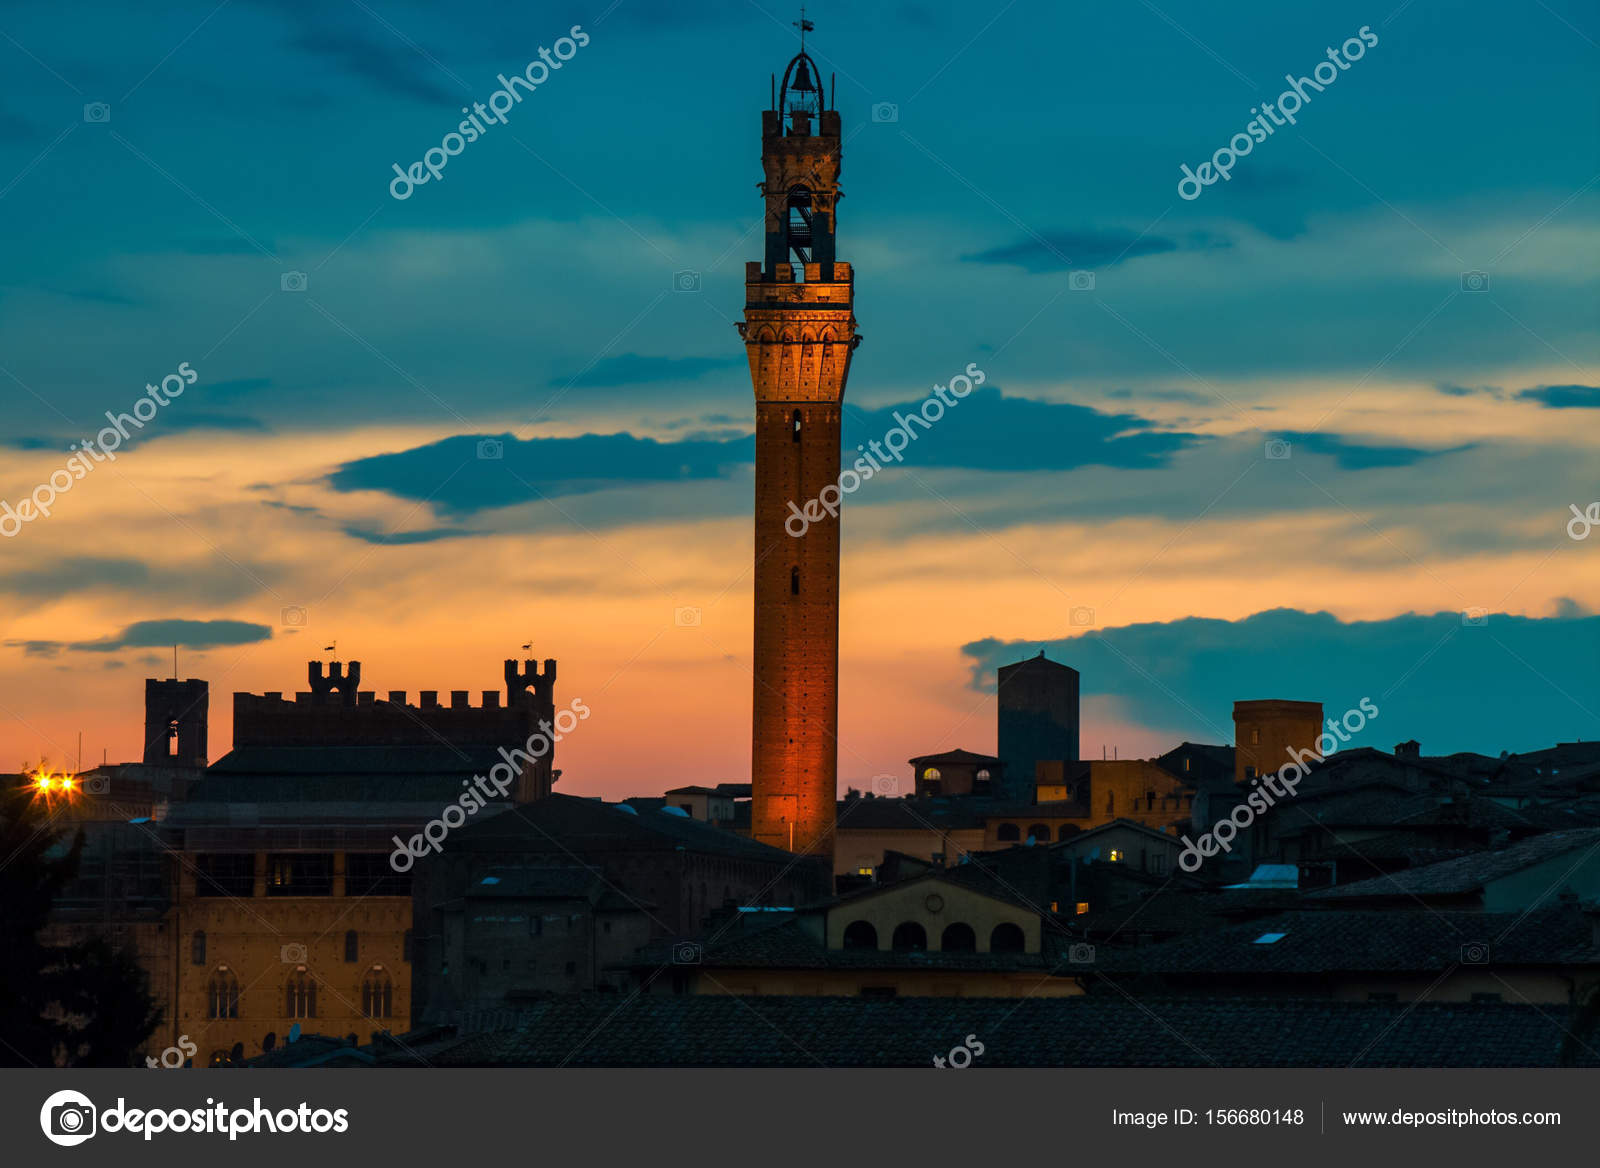 Torre del Mangia in Siena against sunset sky. Tuscany, Italy.